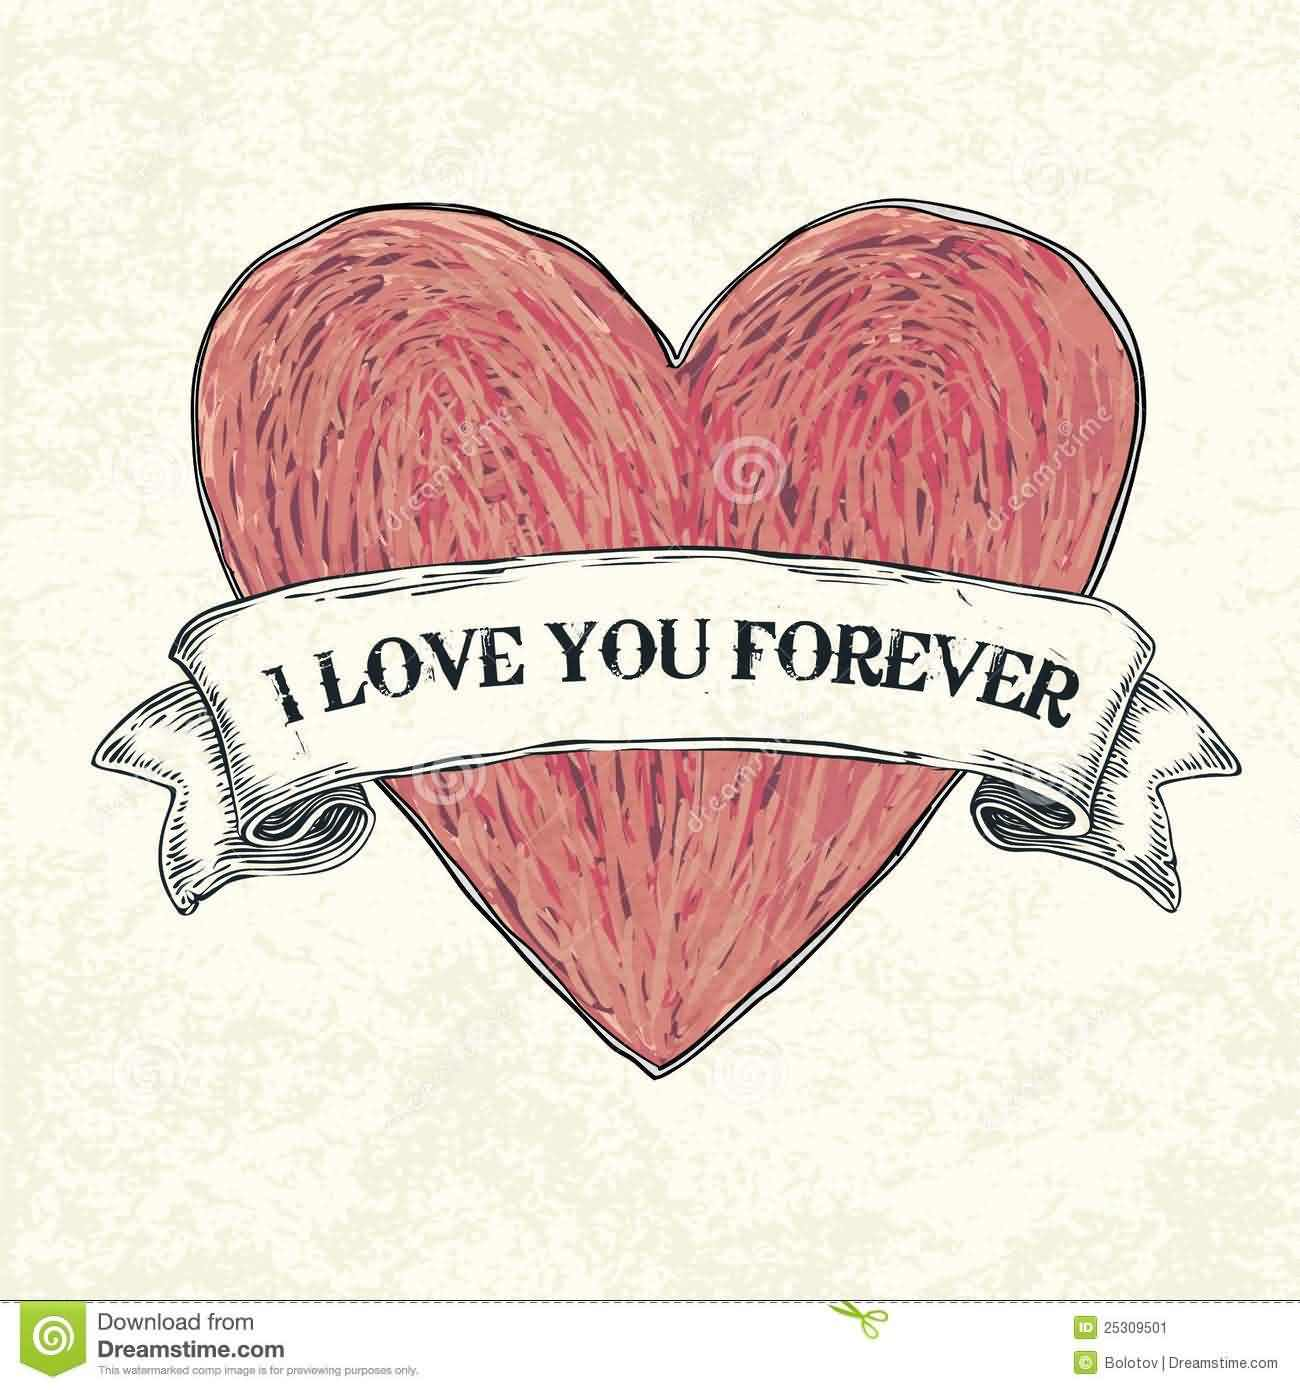 I Love You Forever Drawing Greeting Image